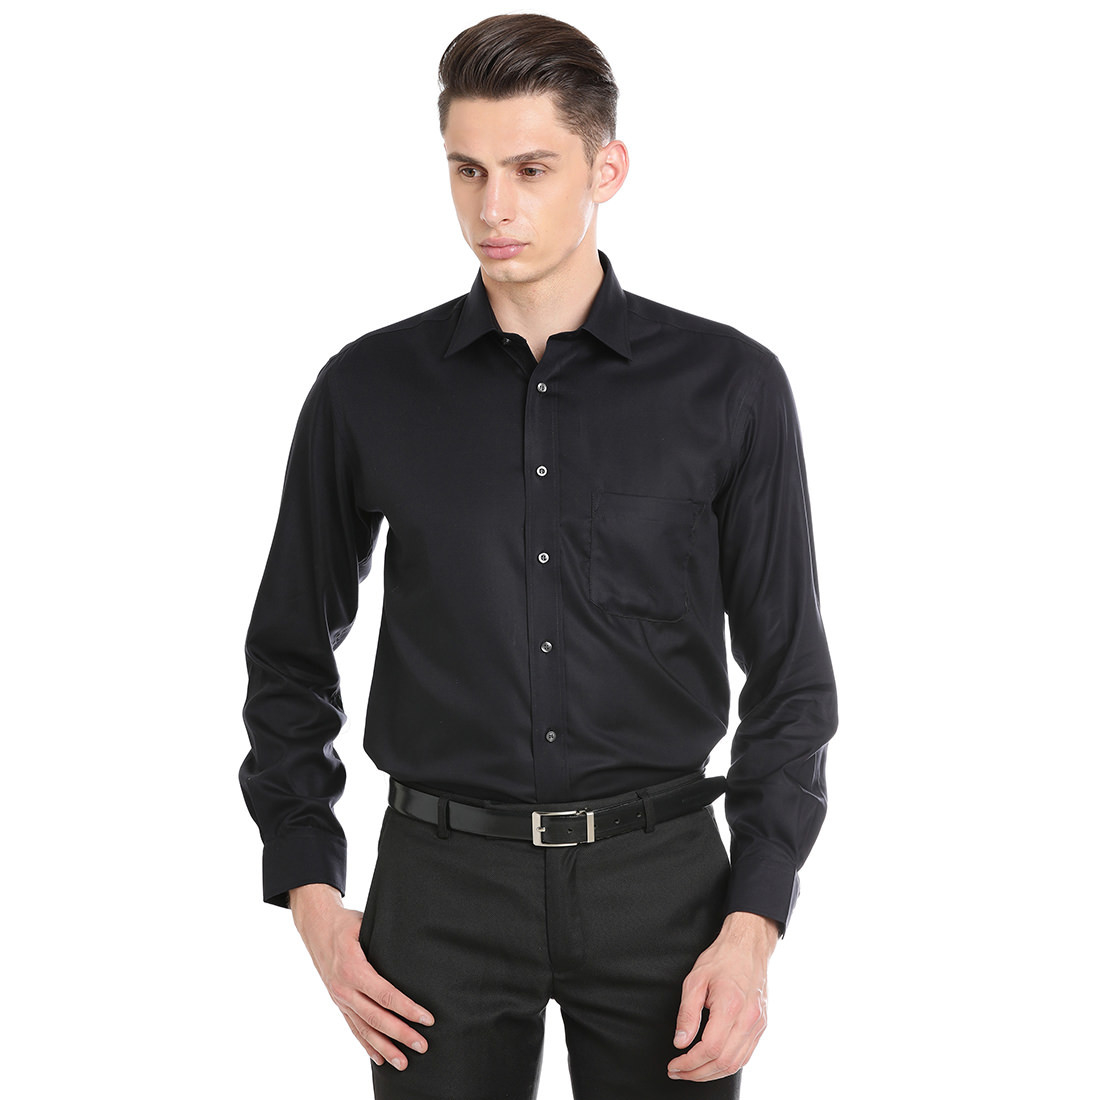 Paradigm Black Color Formal Pure Cotton Non-Iron Shirt